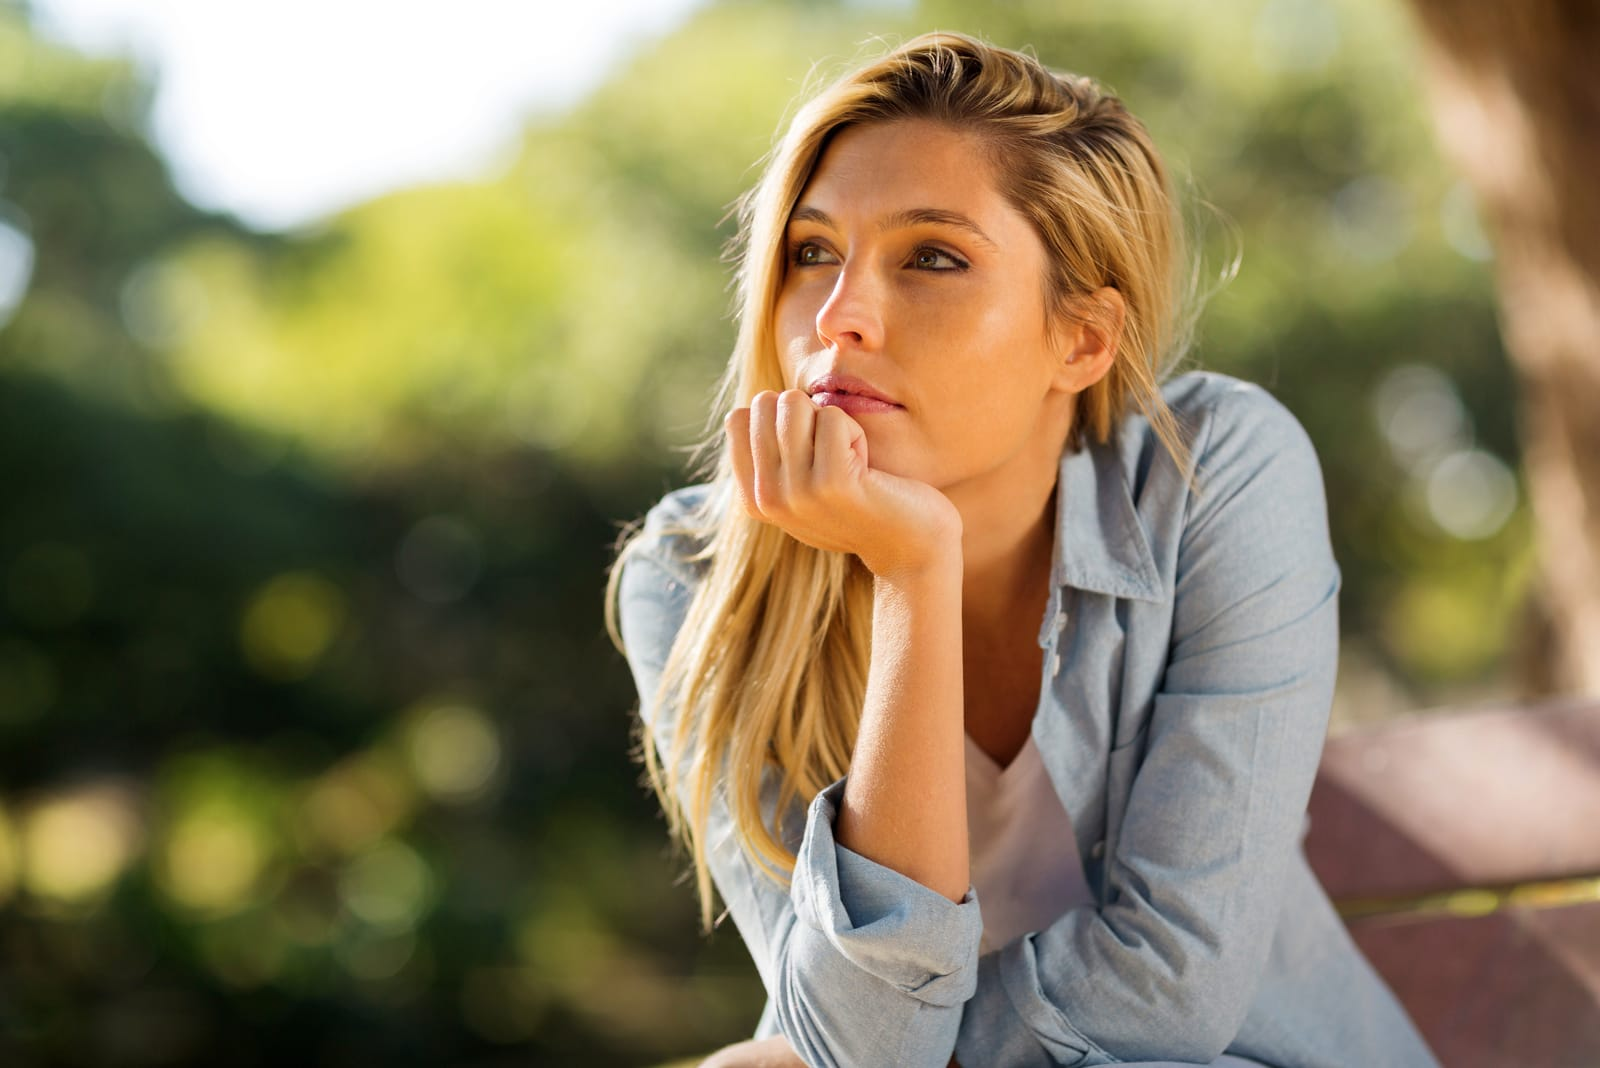 young blond woman thinking outdoor